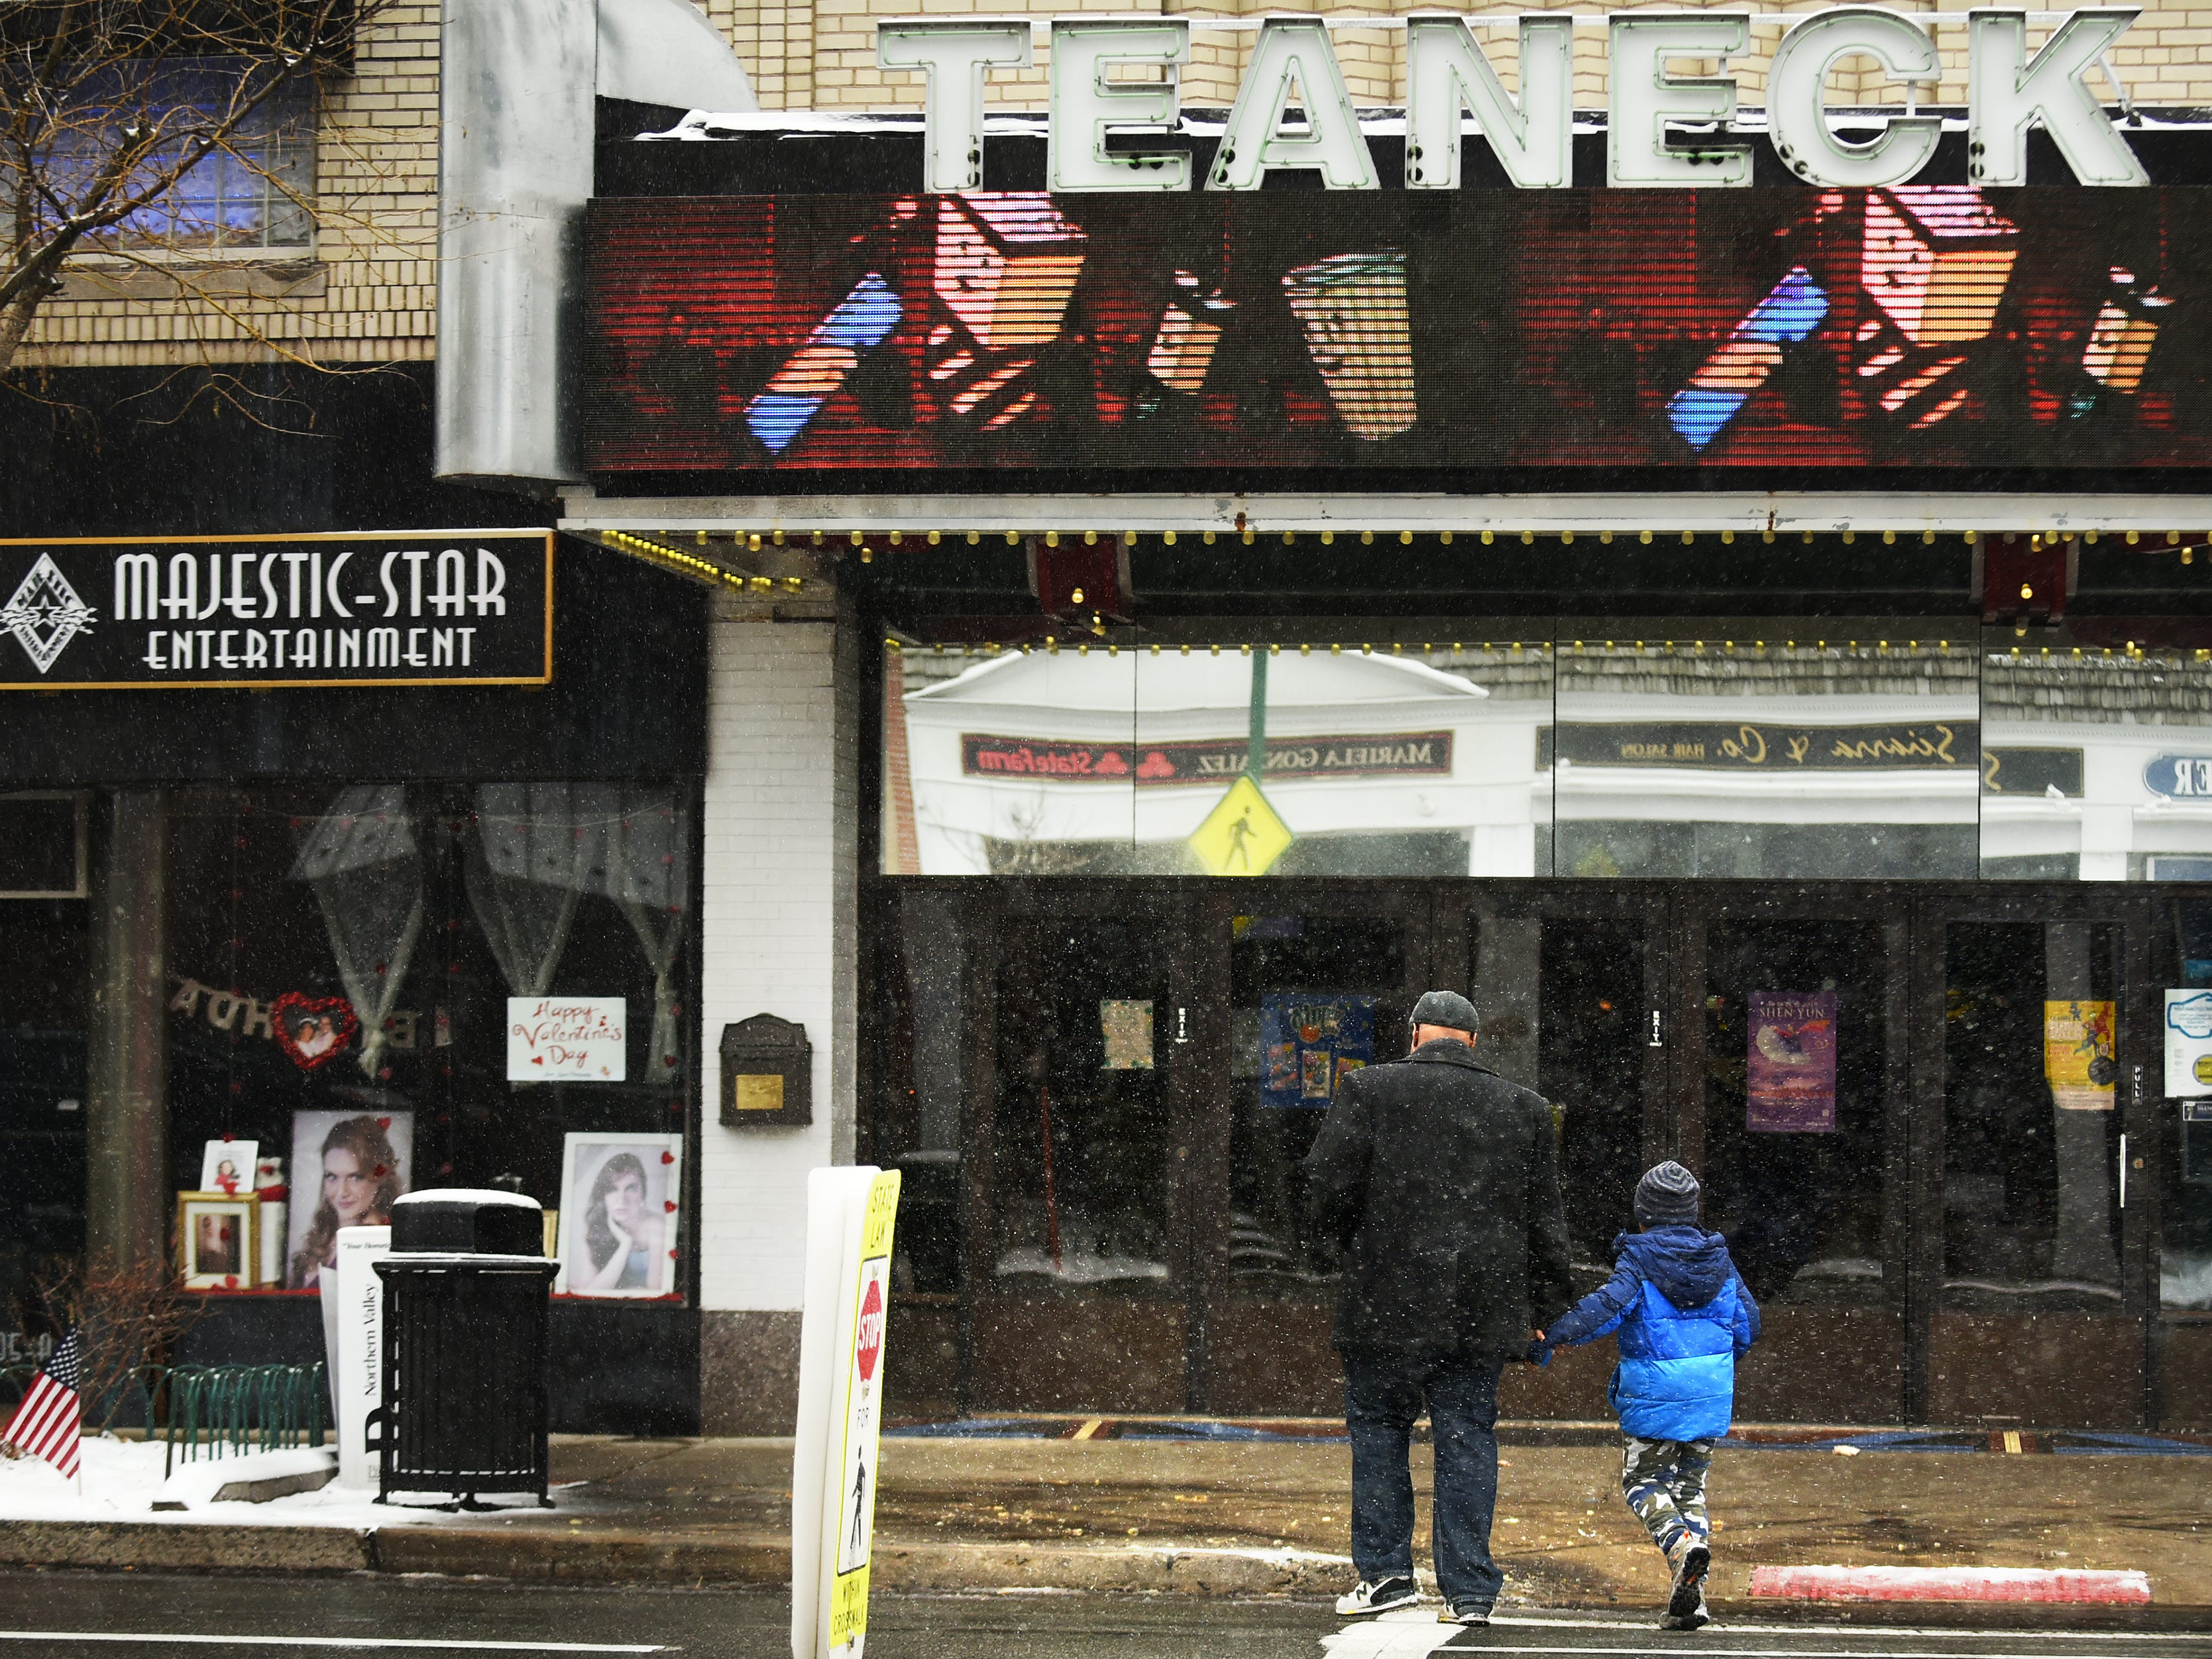 A man and child cross Cedar Lane in front of the movie theater as snow falls in Teaneck on Wednesday February 20, 2019.